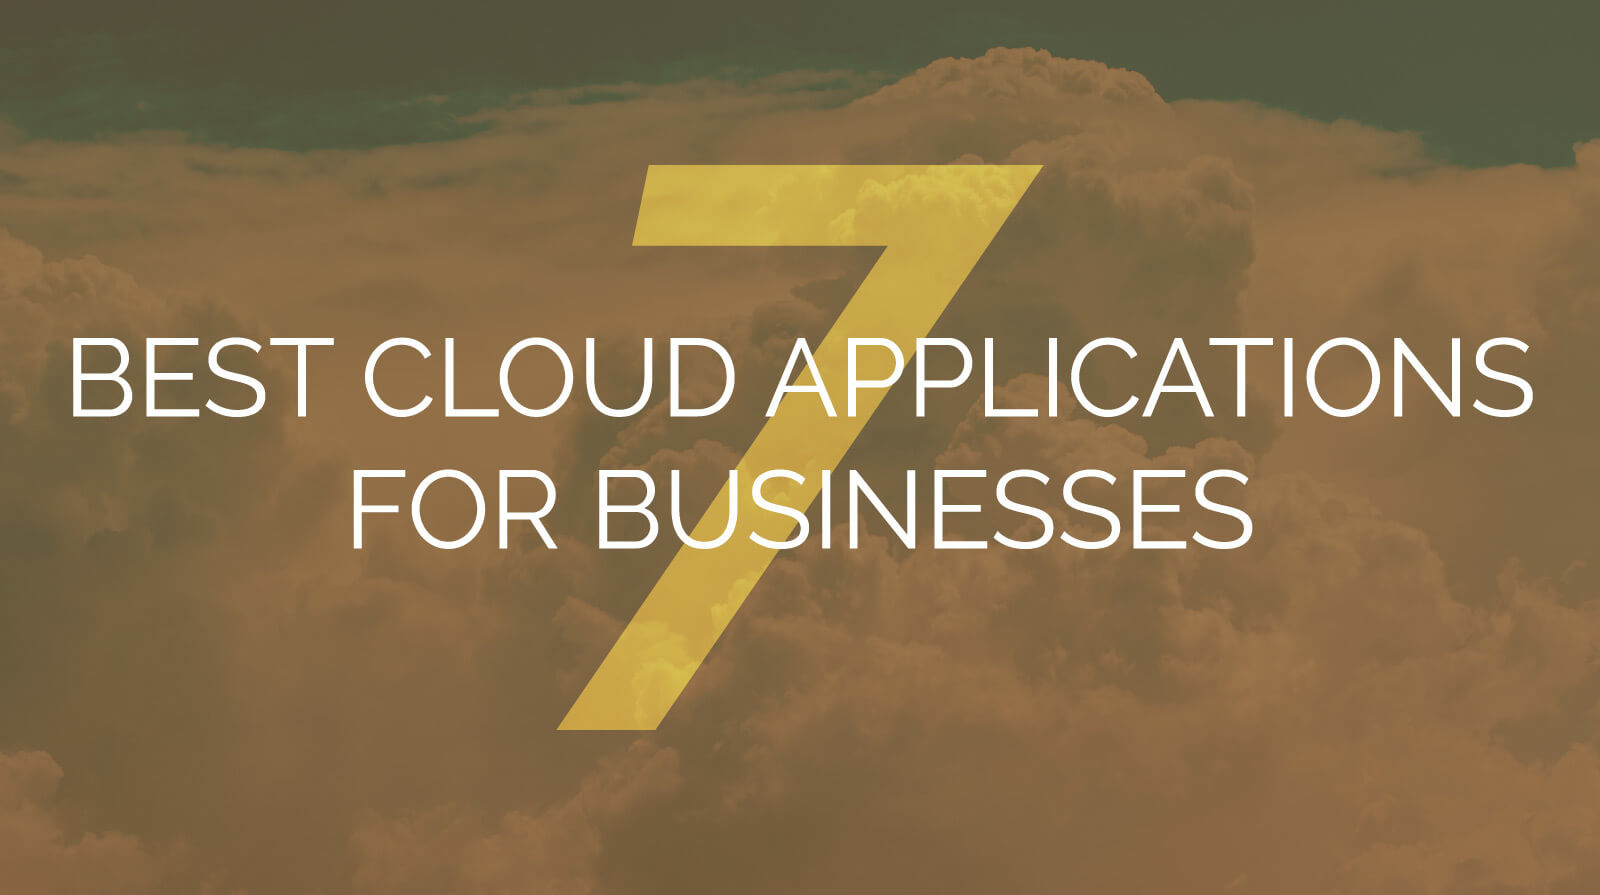 7 Best Cloud Applications for Businesses